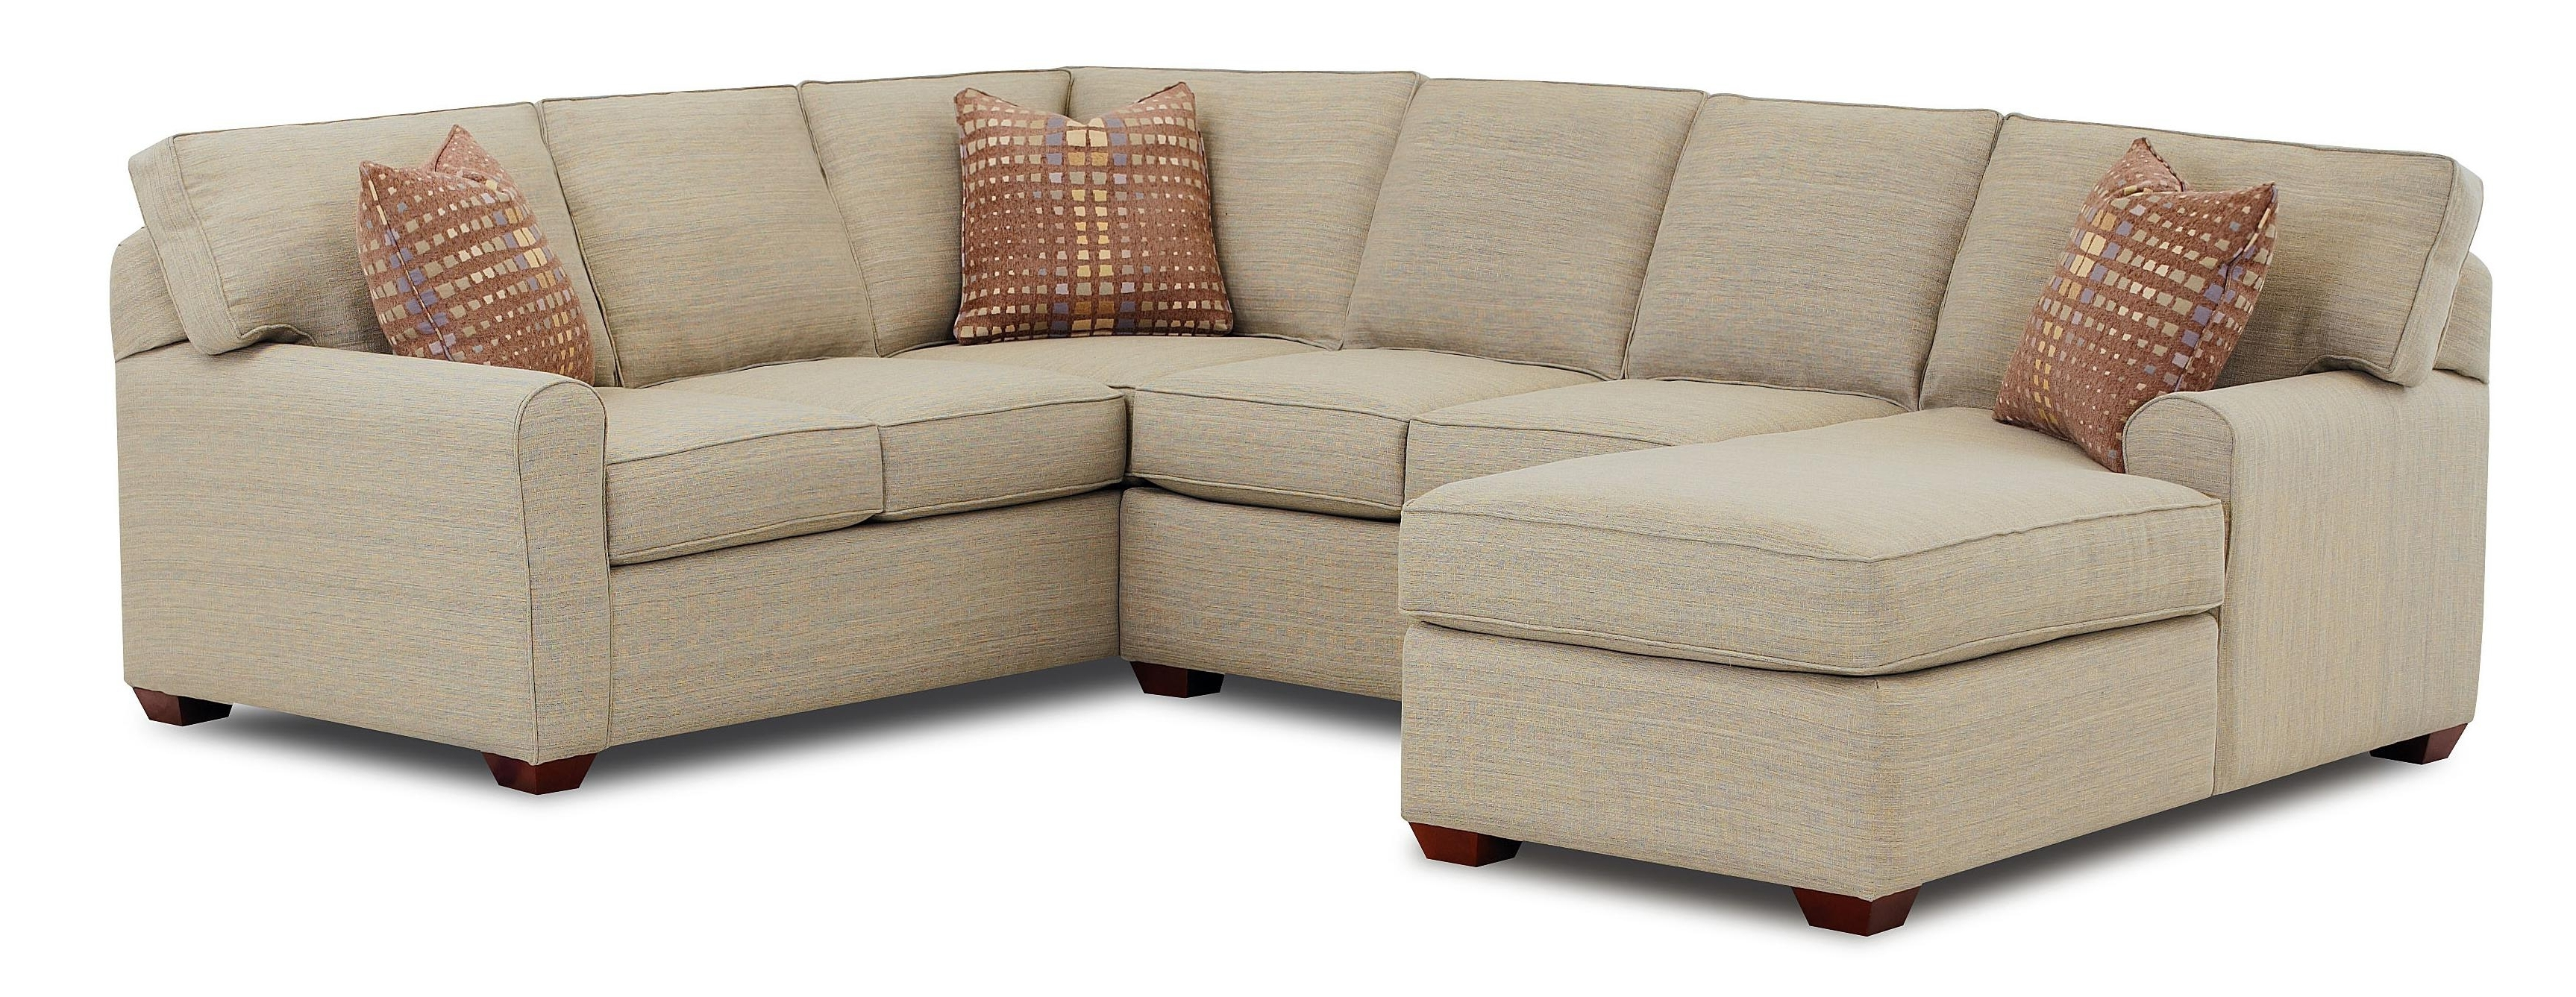 Well Known Chaise Lounge Sleeper Sofas Throughout Sectional Sleeper Sofa With Chaise Lounge – Best Sectional Sofa Ideas (View 1 of 15)